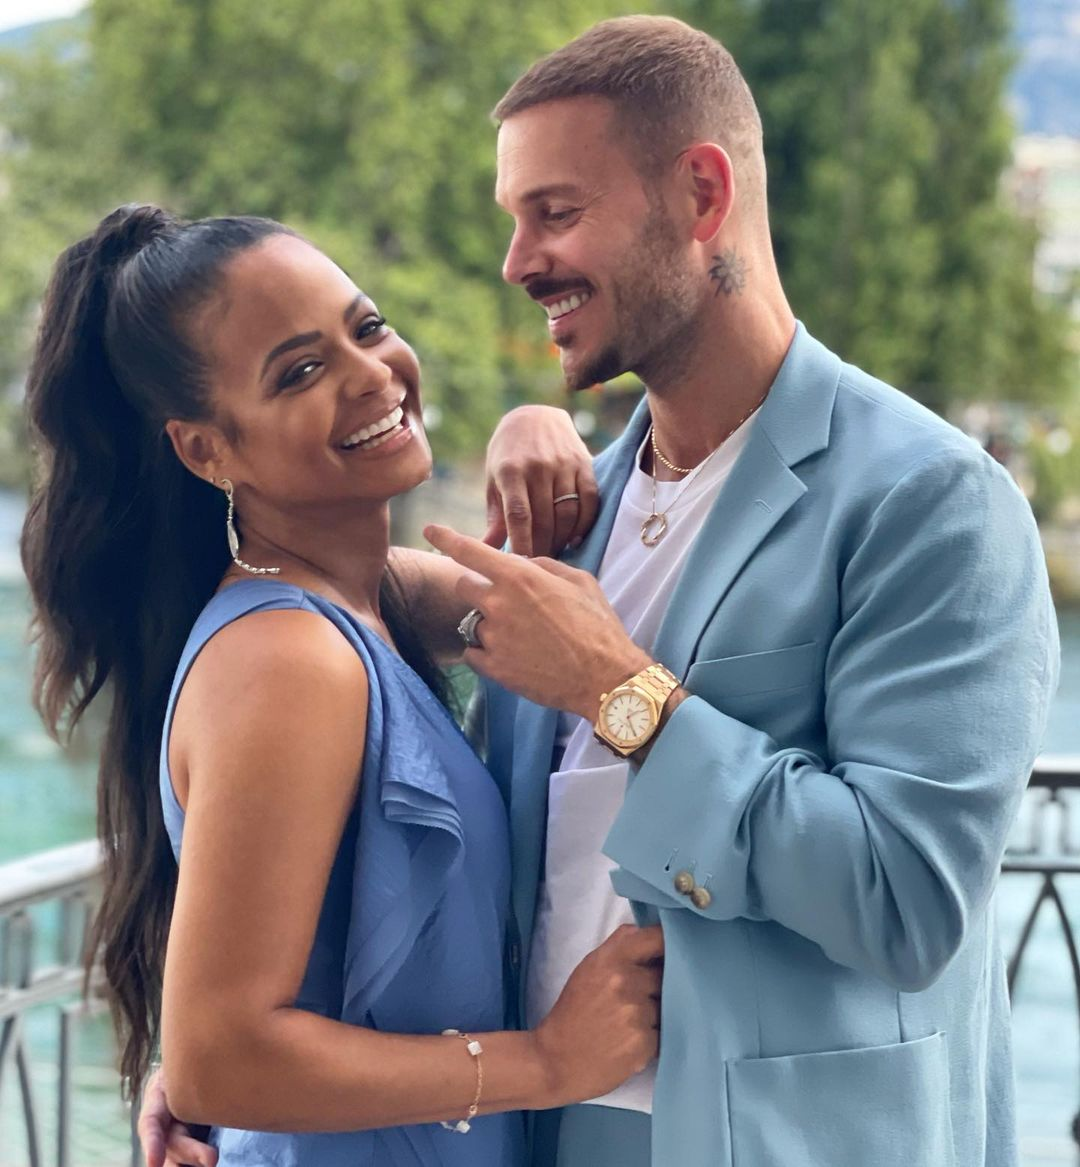 Christina Milian with her boyfriend, Matt, she is smiling at the camera and he is looking at her adoringly